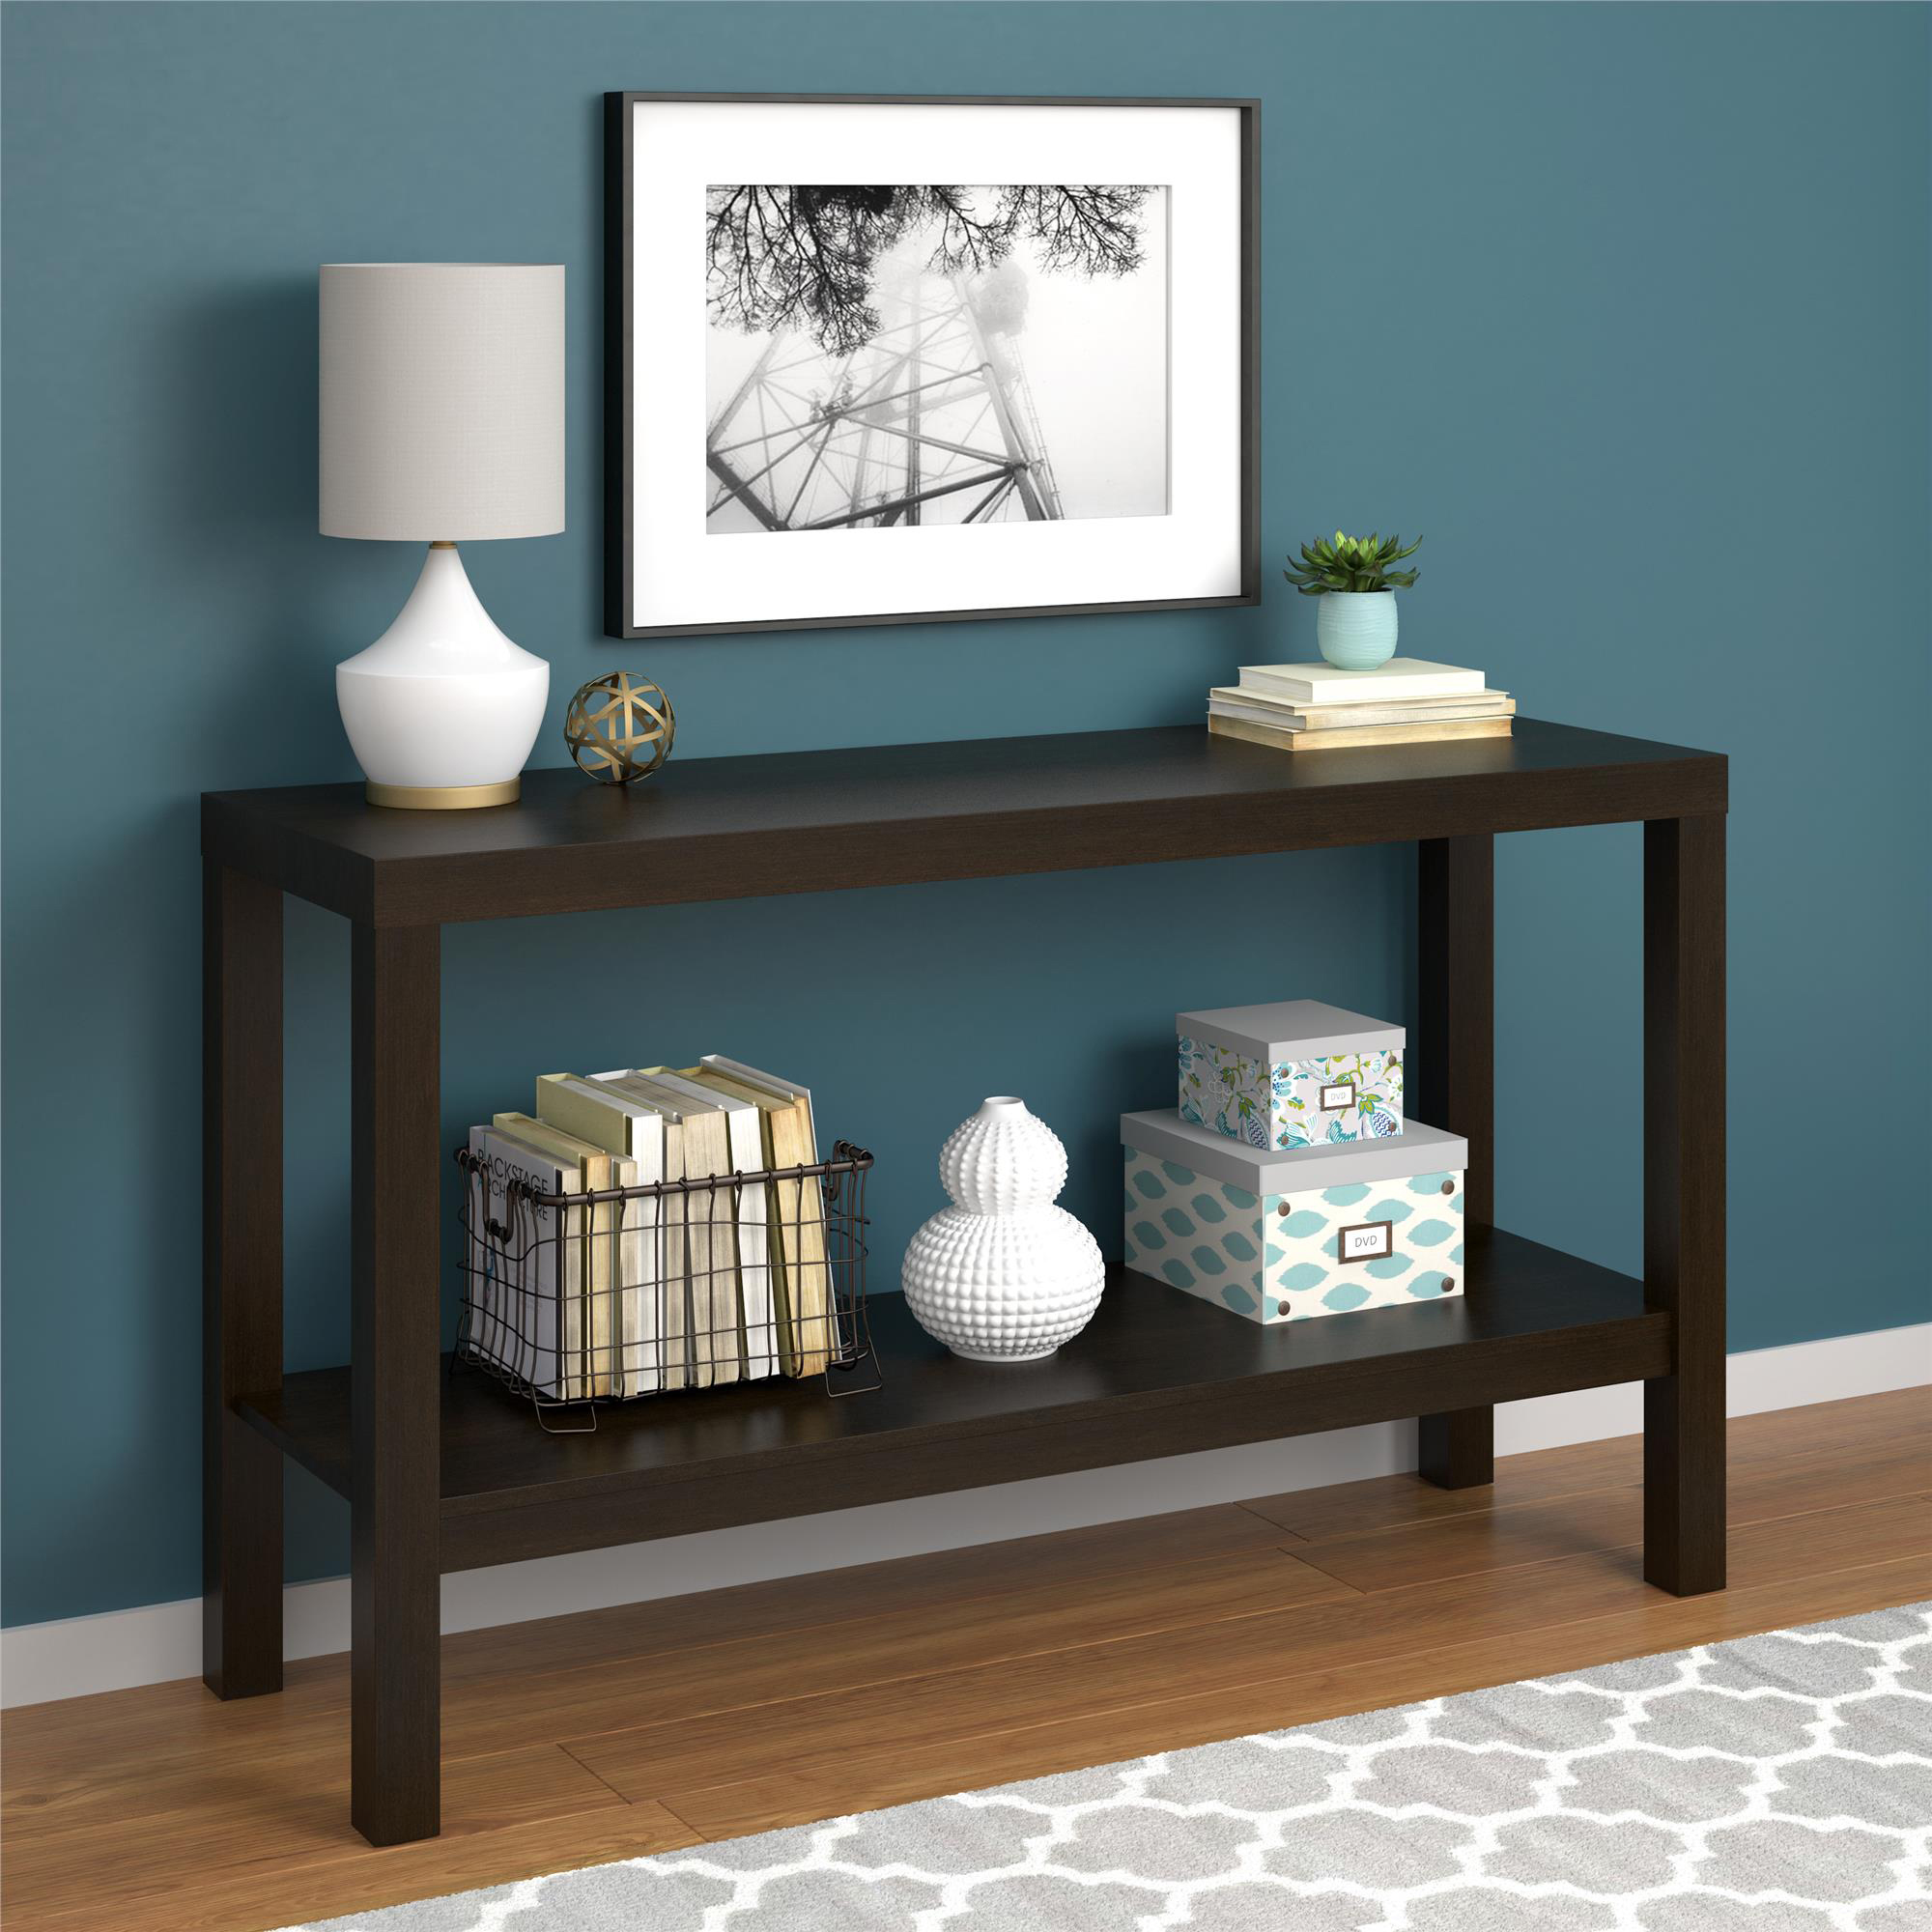 Mainstays Parsons Console Table, Multiple Colors Available by